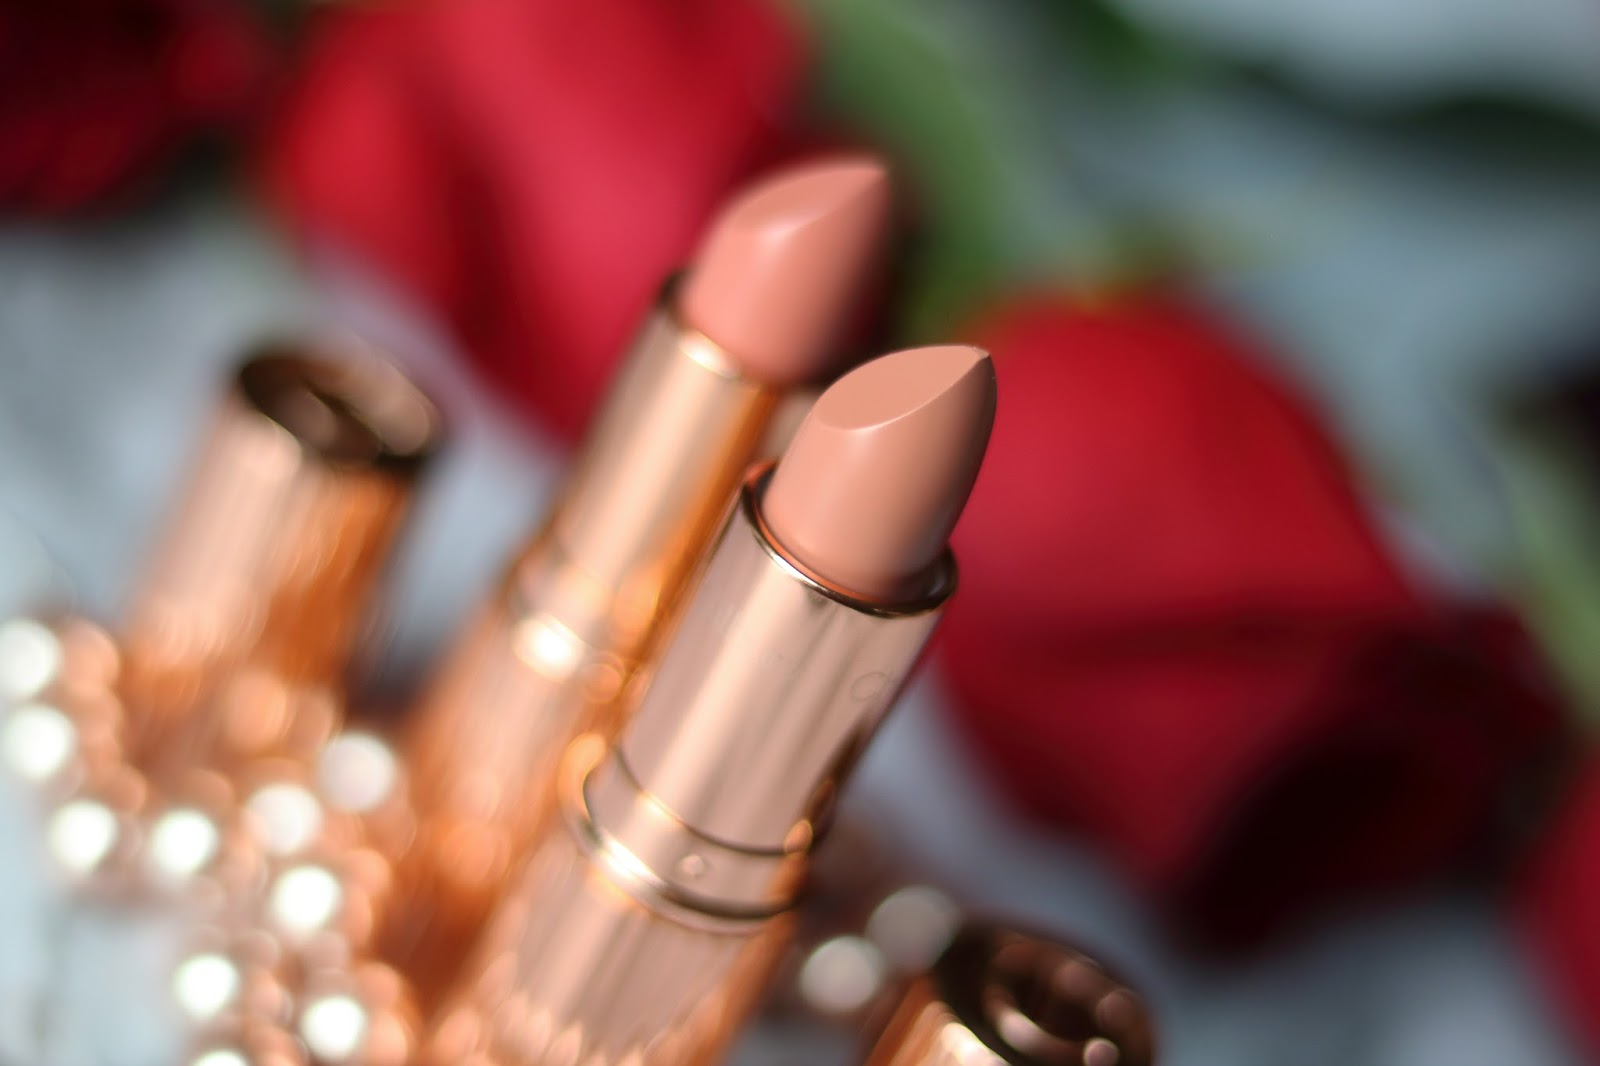 Charlotte Tilbury penelope pink bitch perfect swatch review kissing lipstick